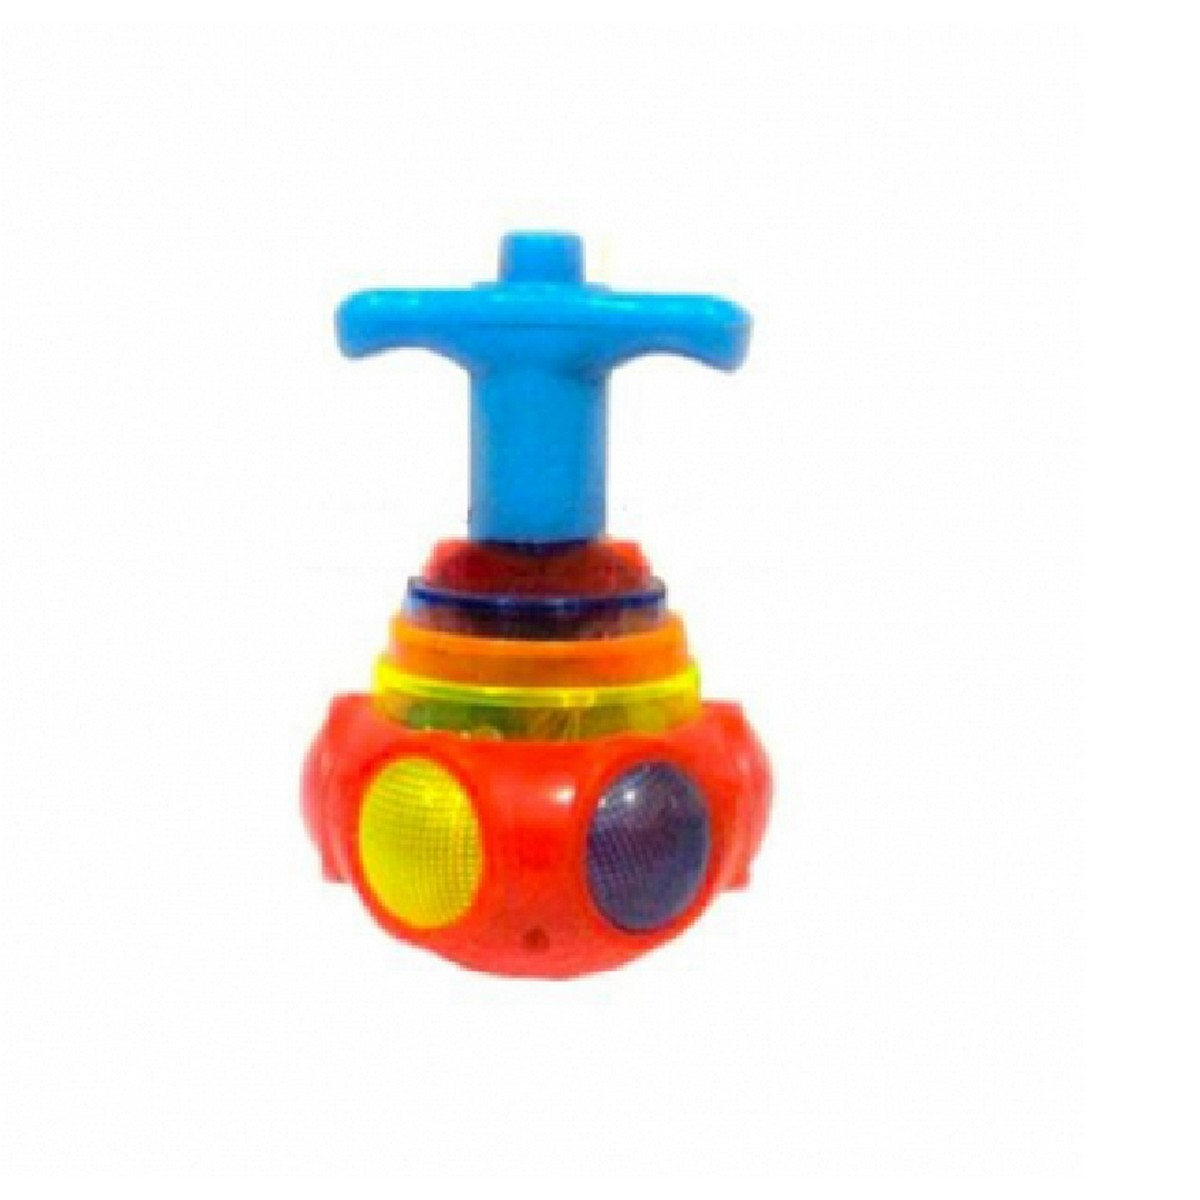 Flash Top Lifo, Latto, Music Toy, Spinning Top